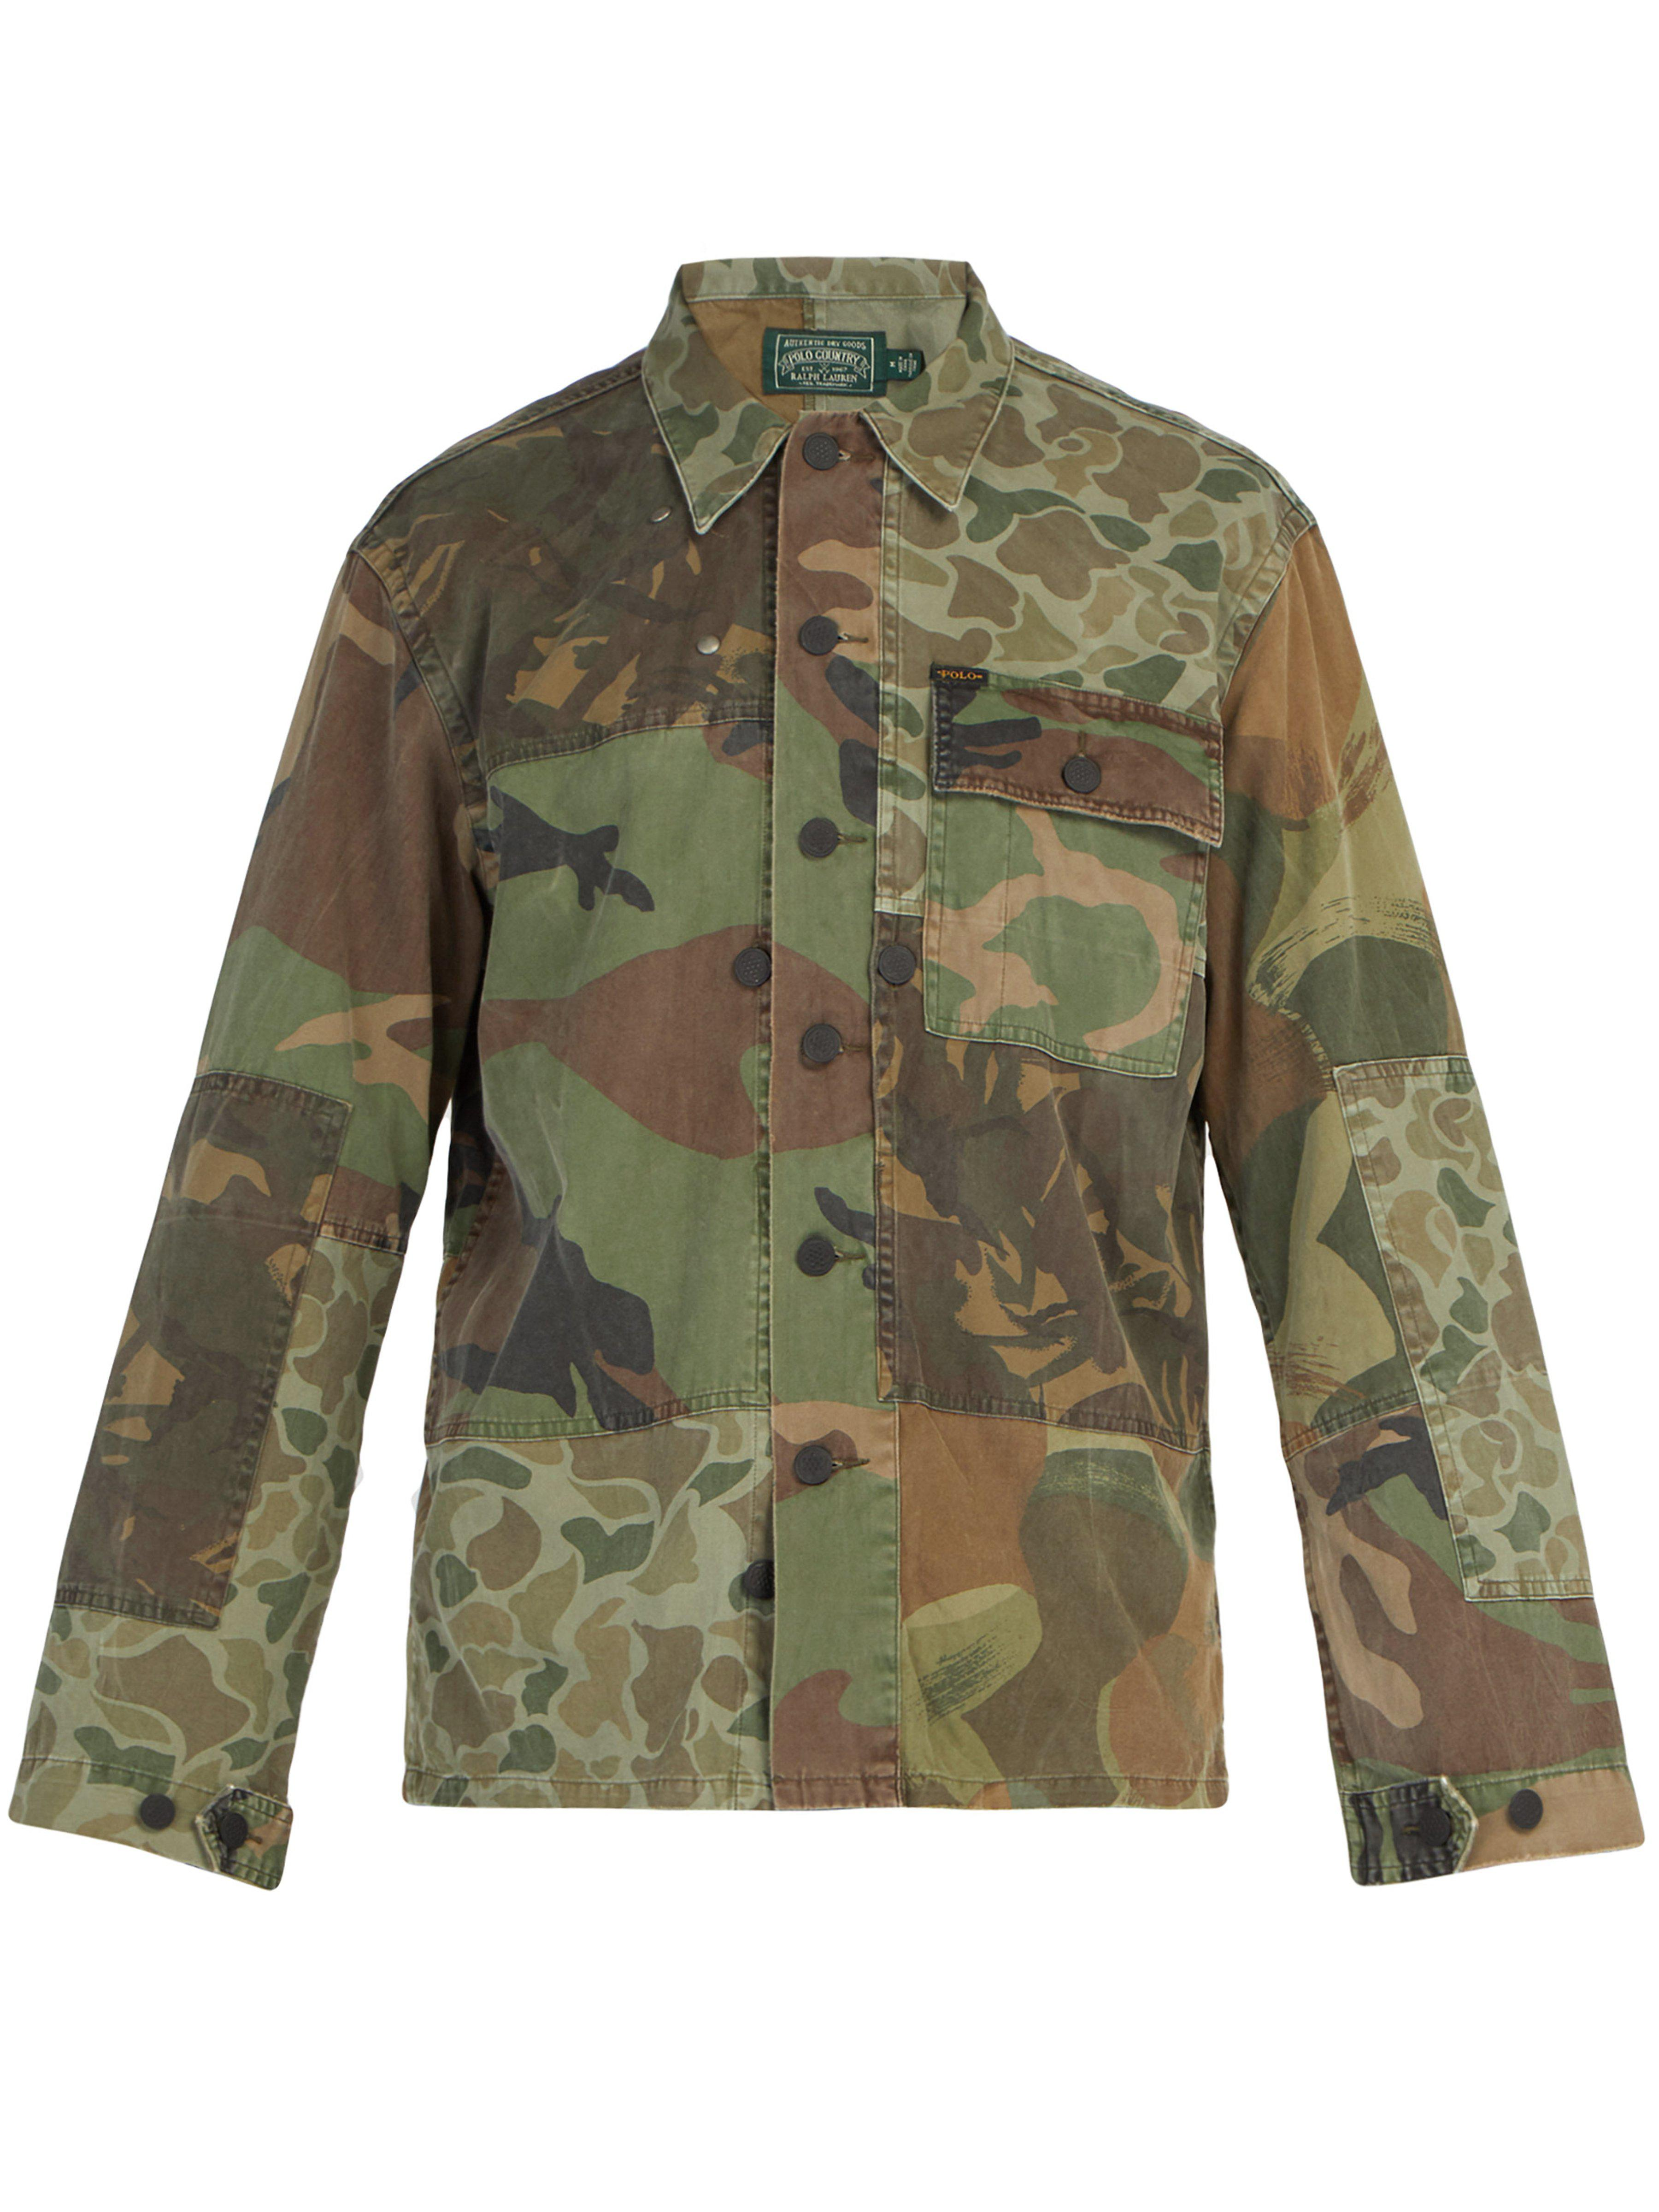 a60044330 Polo Ralph Lauren Camouflage Print Cotton Jacket in Green for Men - Lyst